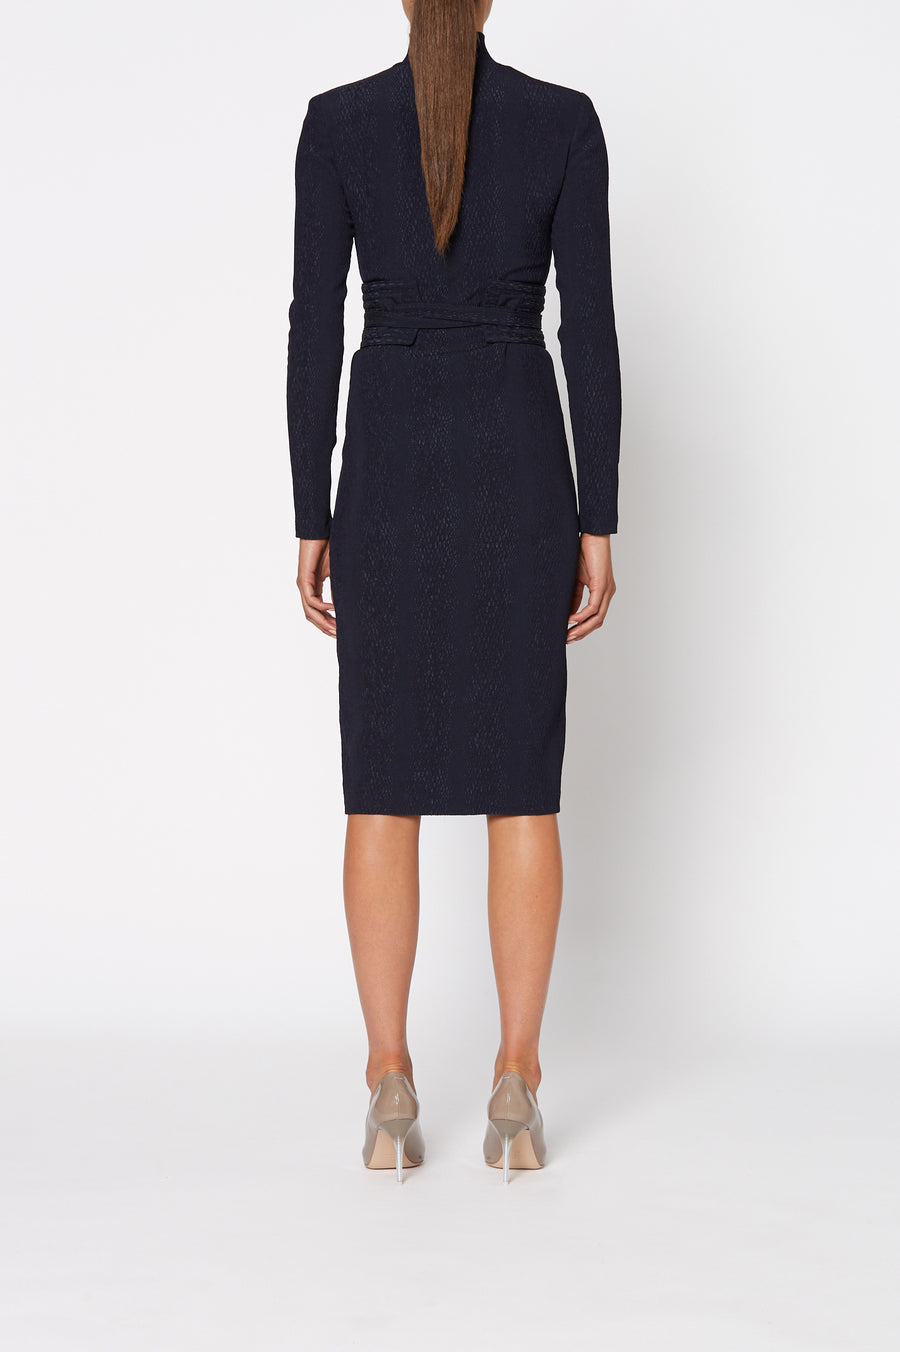 Stretch Reptile Pencil Dress, fitted stretch dress, falls below knee, high neckline, long sleeves, shoulder pads and a wrap around the waist belt. Belt included, Color Navy